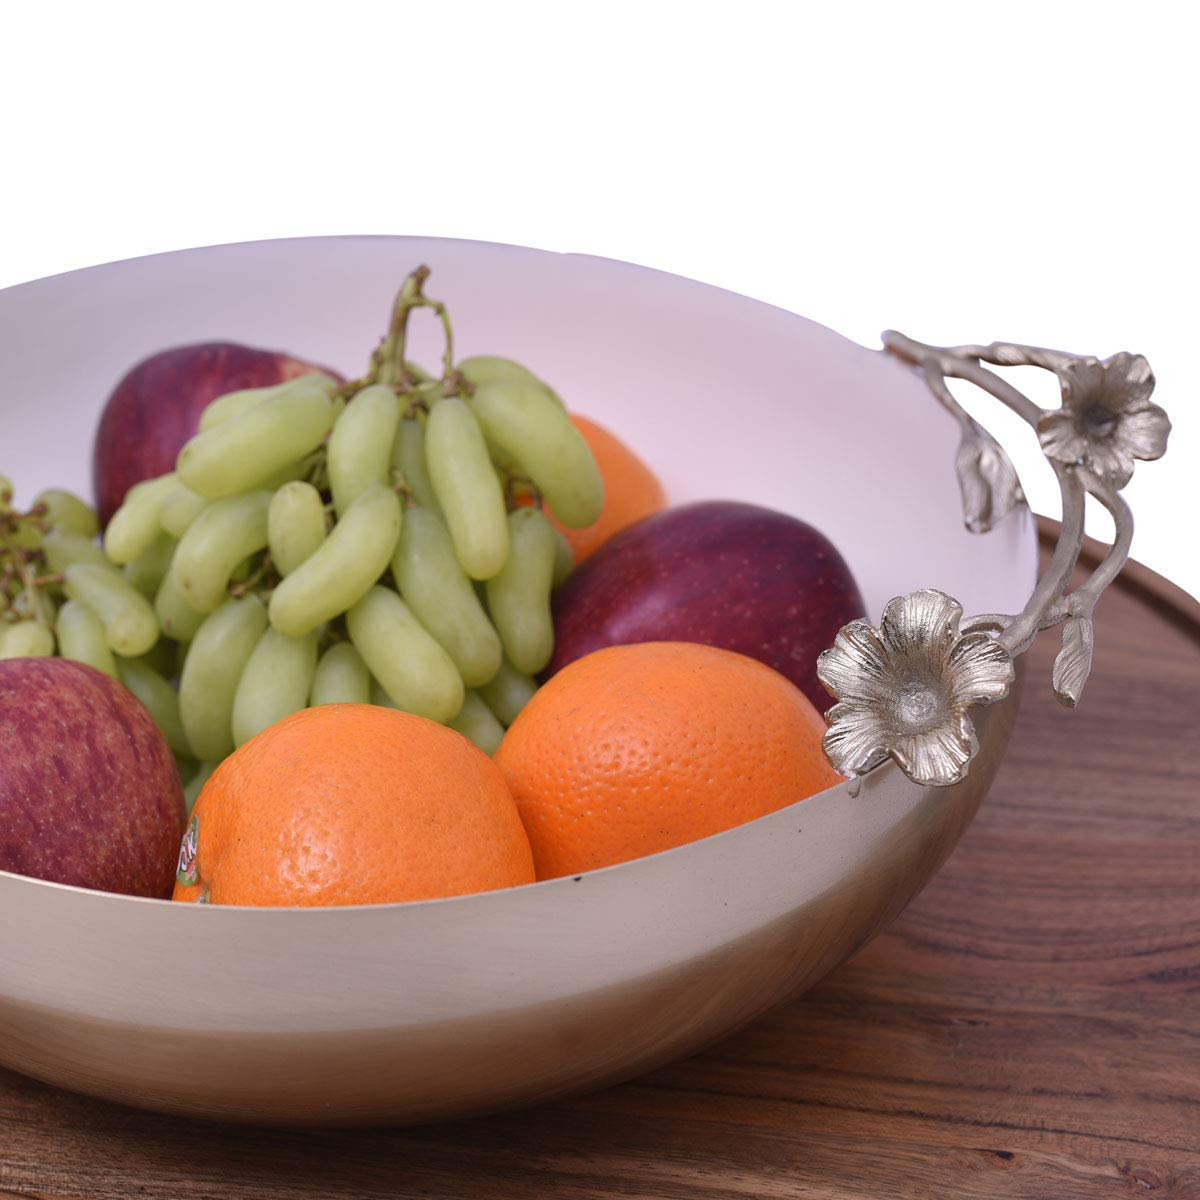 Decozen Large Serving Bowls-Salad Bowl-for Fruits Snacks Nuts Side Dishes-Table D/écor Bowl-Rosemary Flower Shaped Handles-Stainless Steel Fruit Bowl 14 x 12x 5 Inches